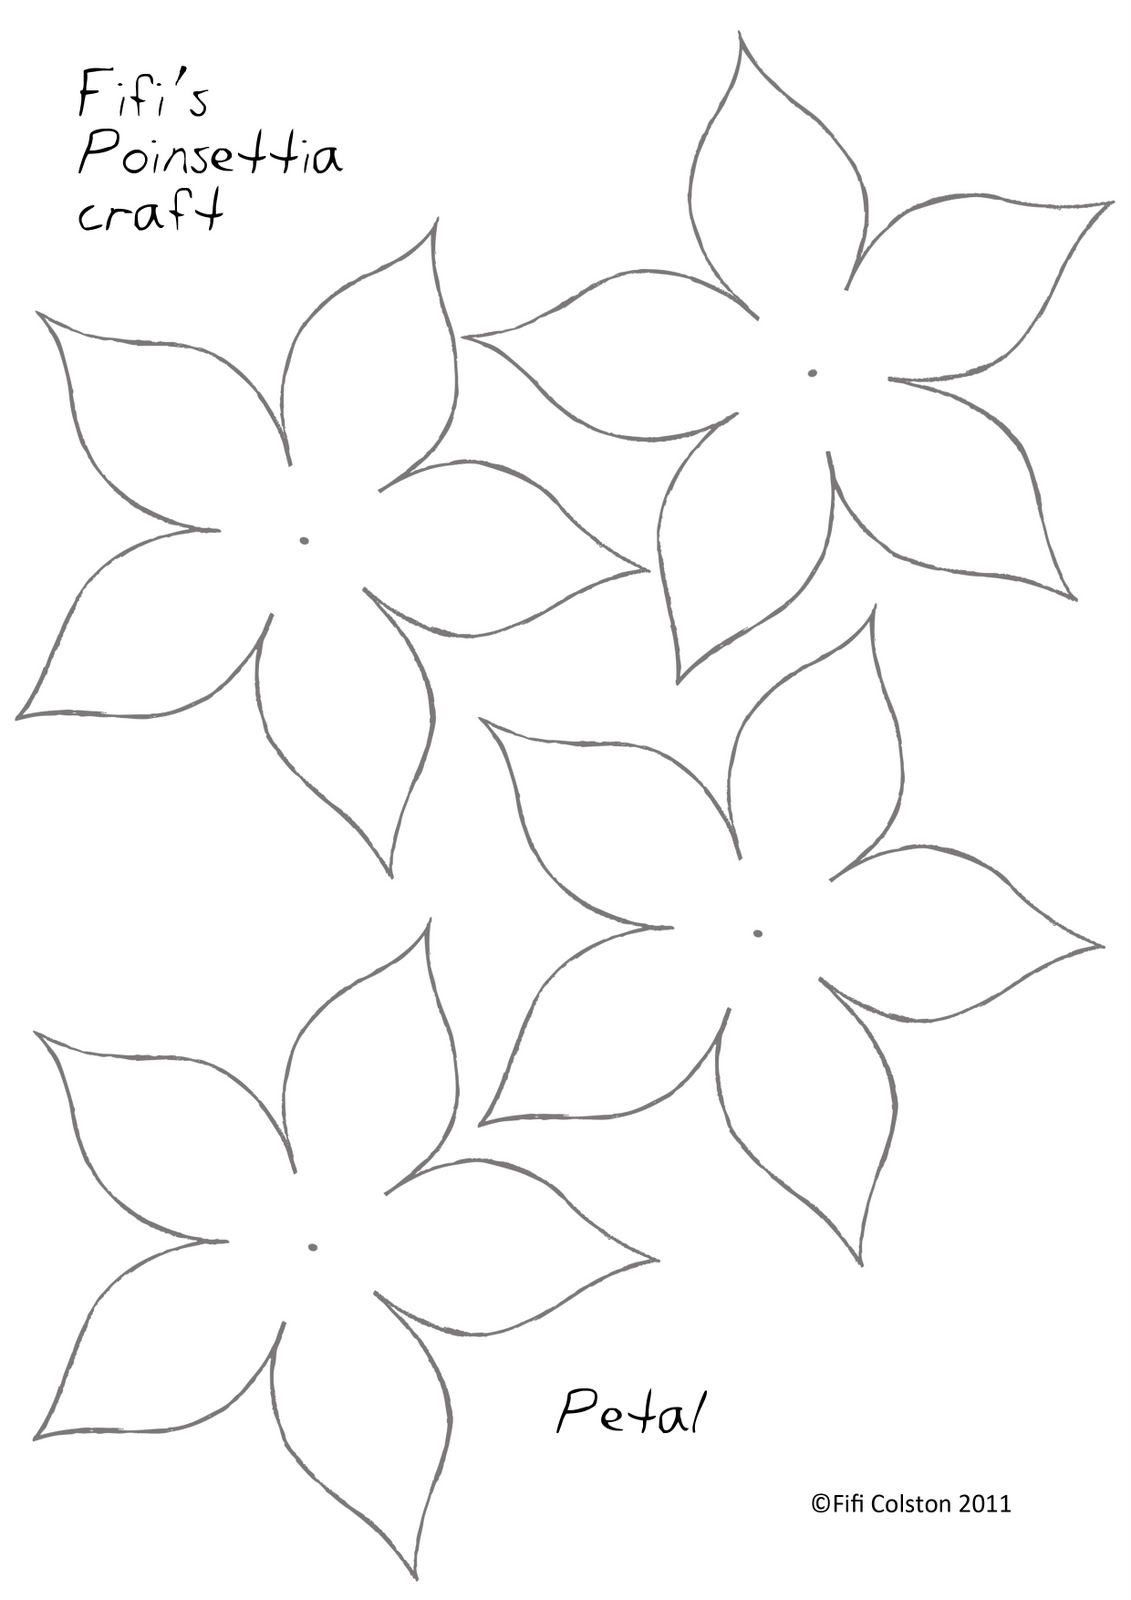 This is an image of Shocking Printable Flower Petal Template Pattern